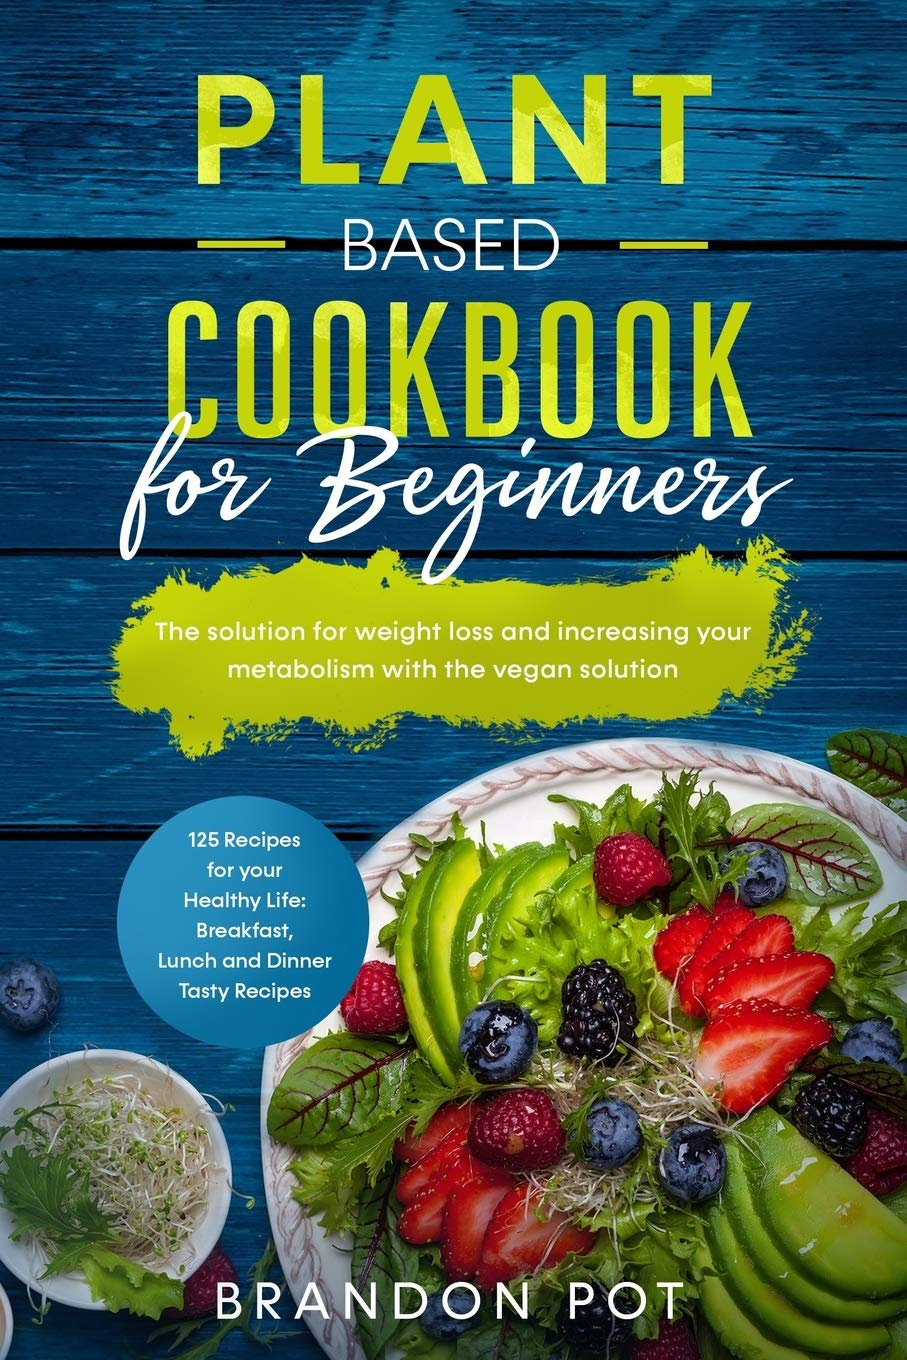 Plant Based Cookbook for Beginners: 125 Recipes for your Health Life: Breakfast, Lunch, and Dinner Tasty Recipes – The Solution for Weight Loss and Increasing Your Metabolism with the Vegan Solution - Tolerant Planet